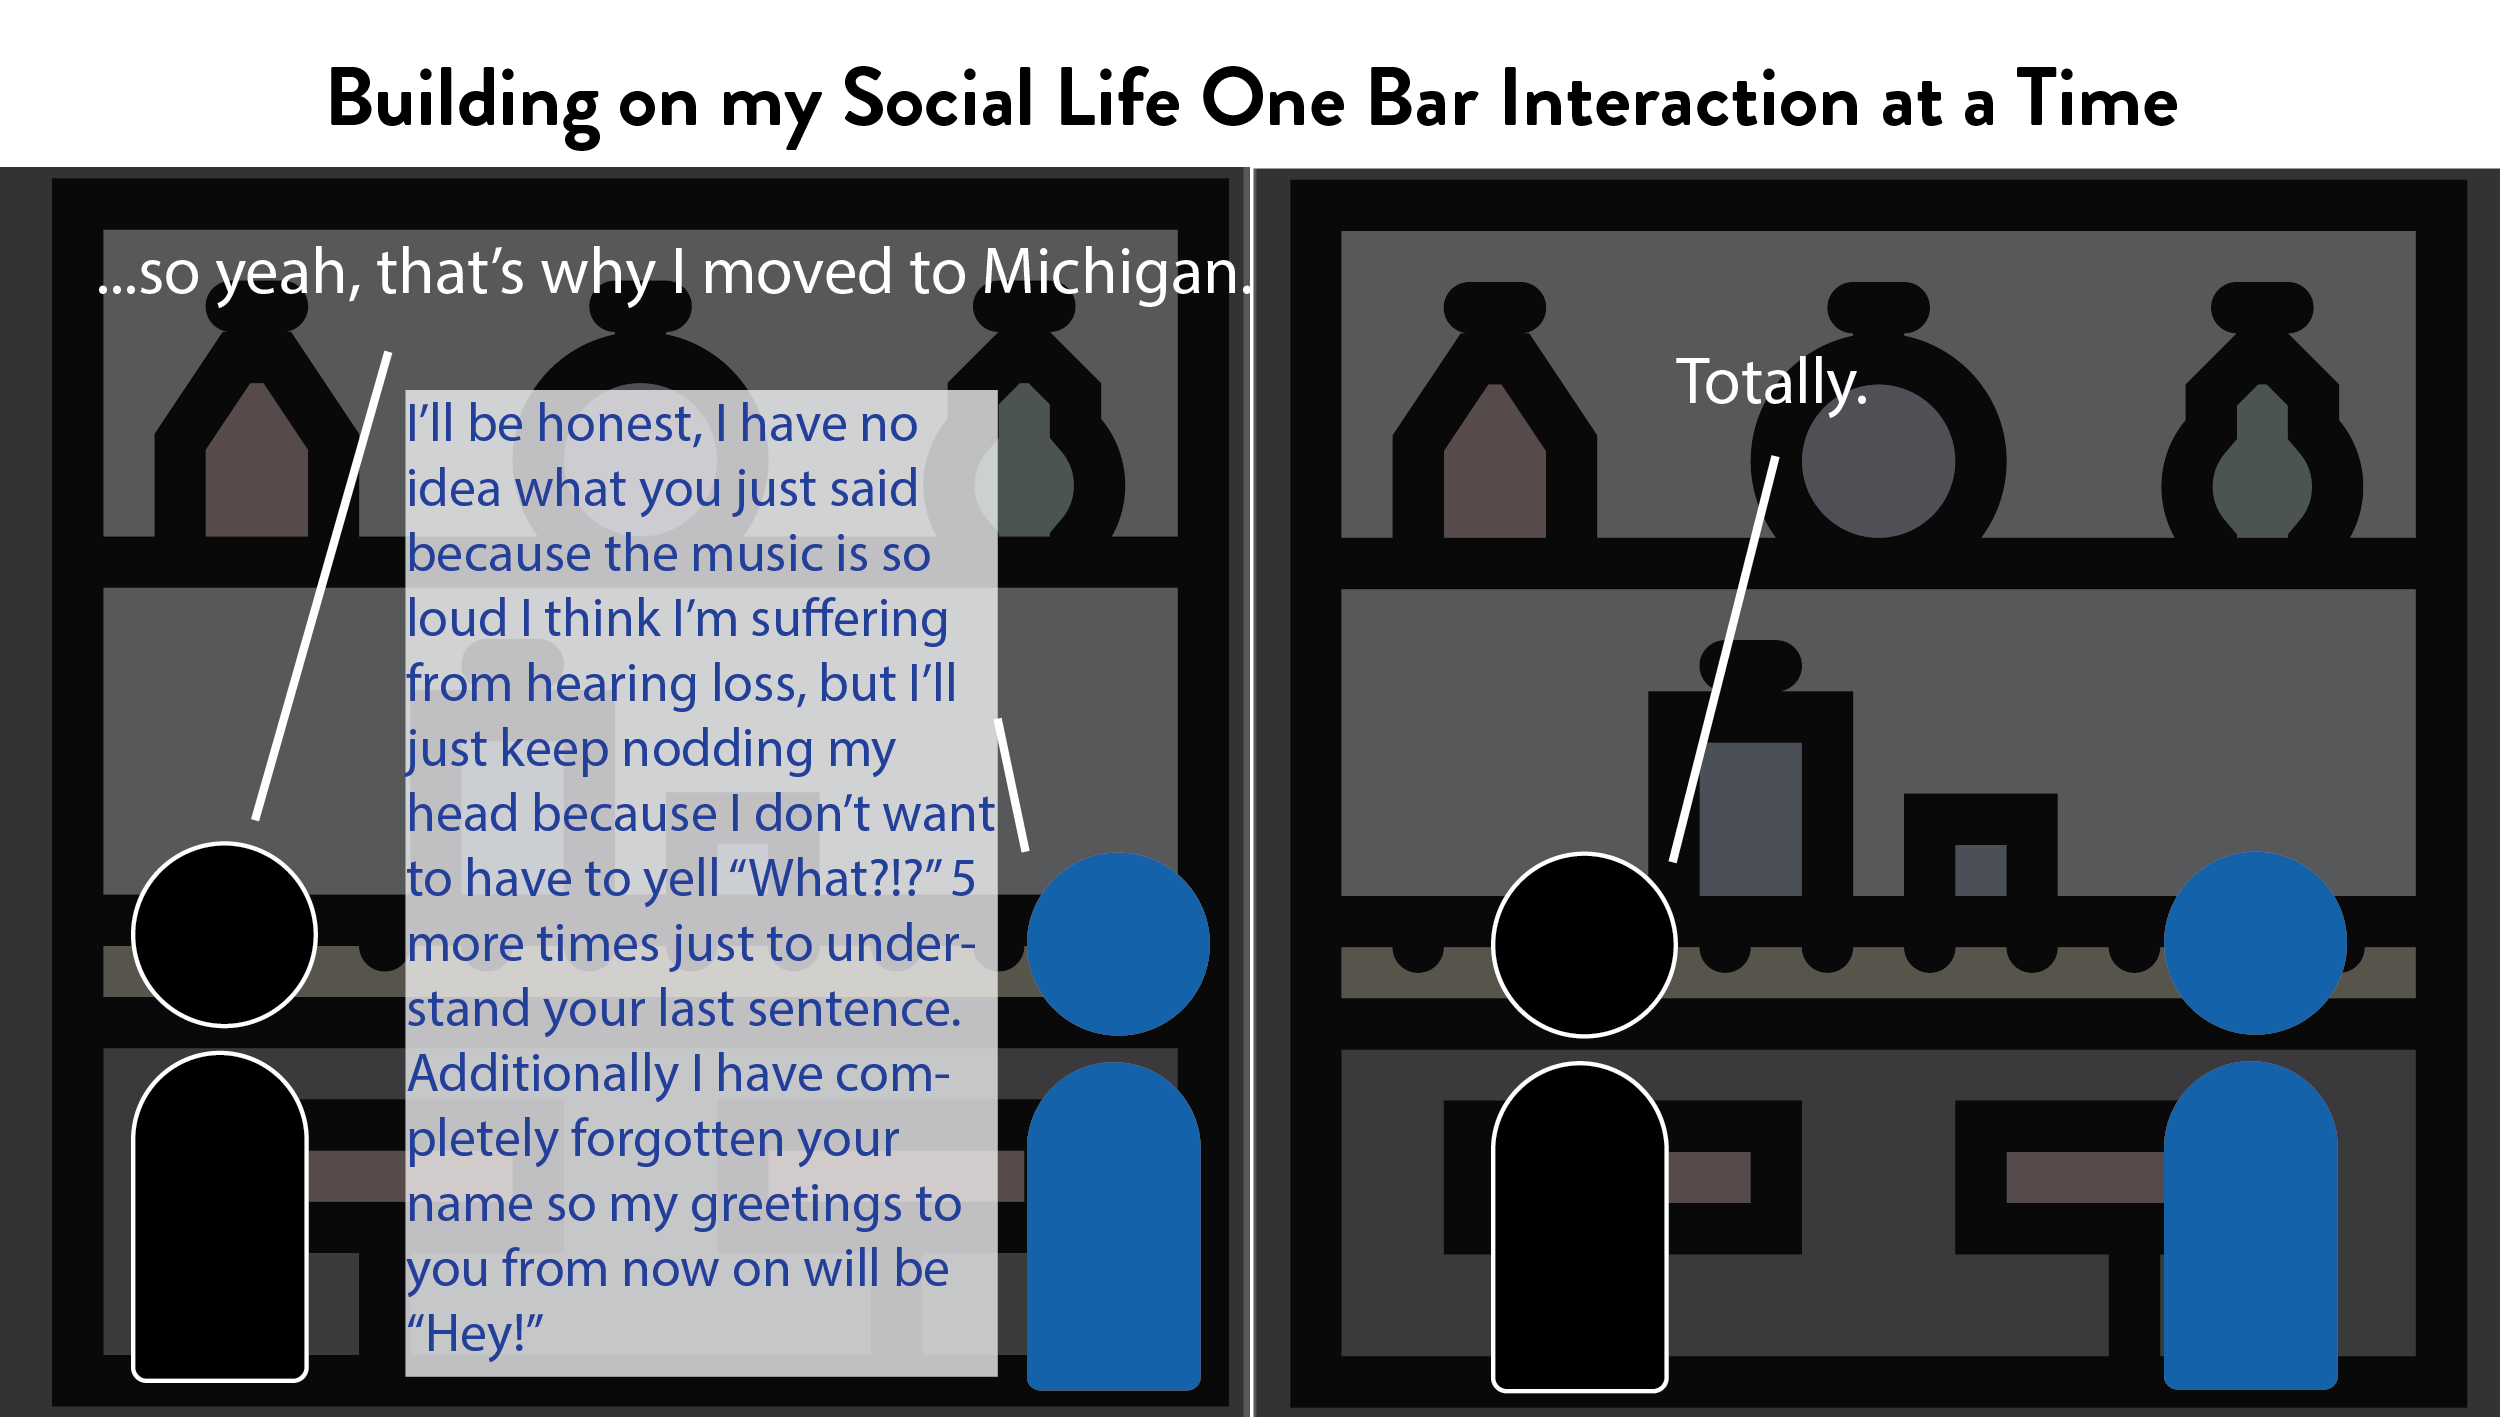 Typical Bar Interaction